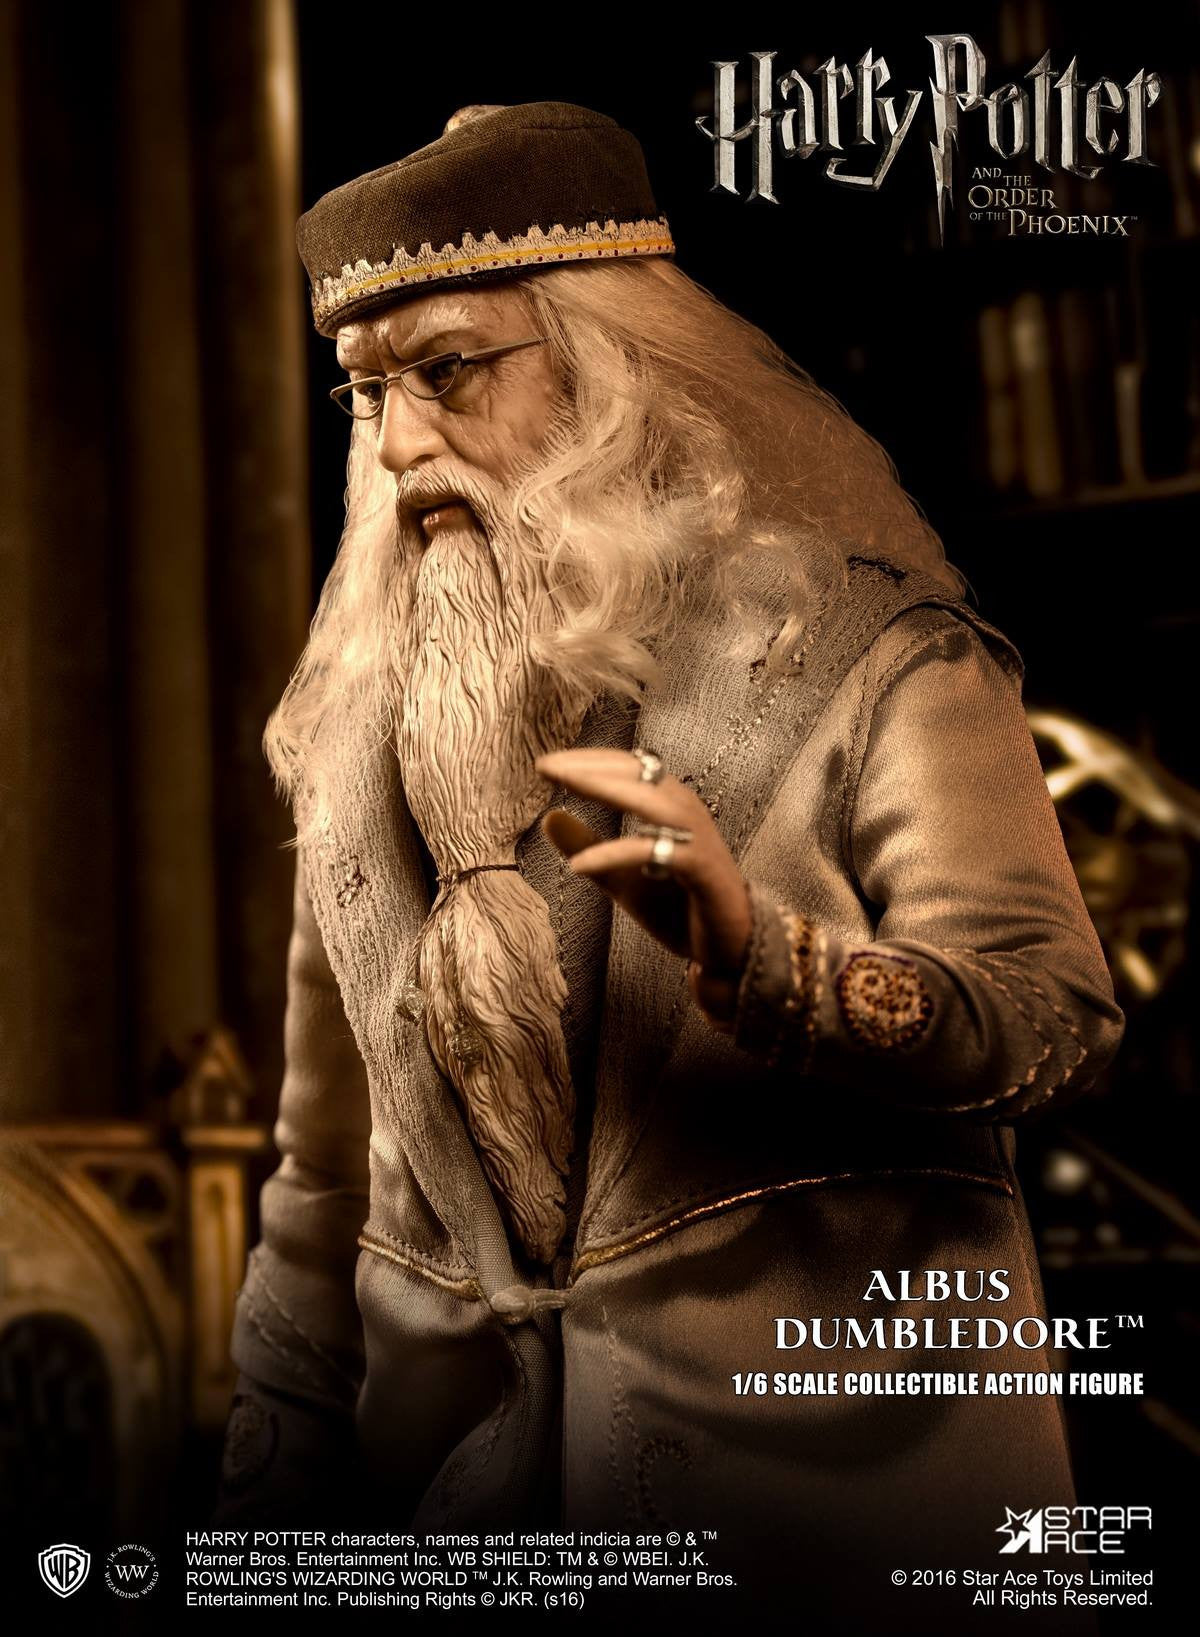 Star Ace Toys - SA0023 - Harry Potter and the Order of the Phoenix - Albus Dumbledore II - Marvelous Toys - 8